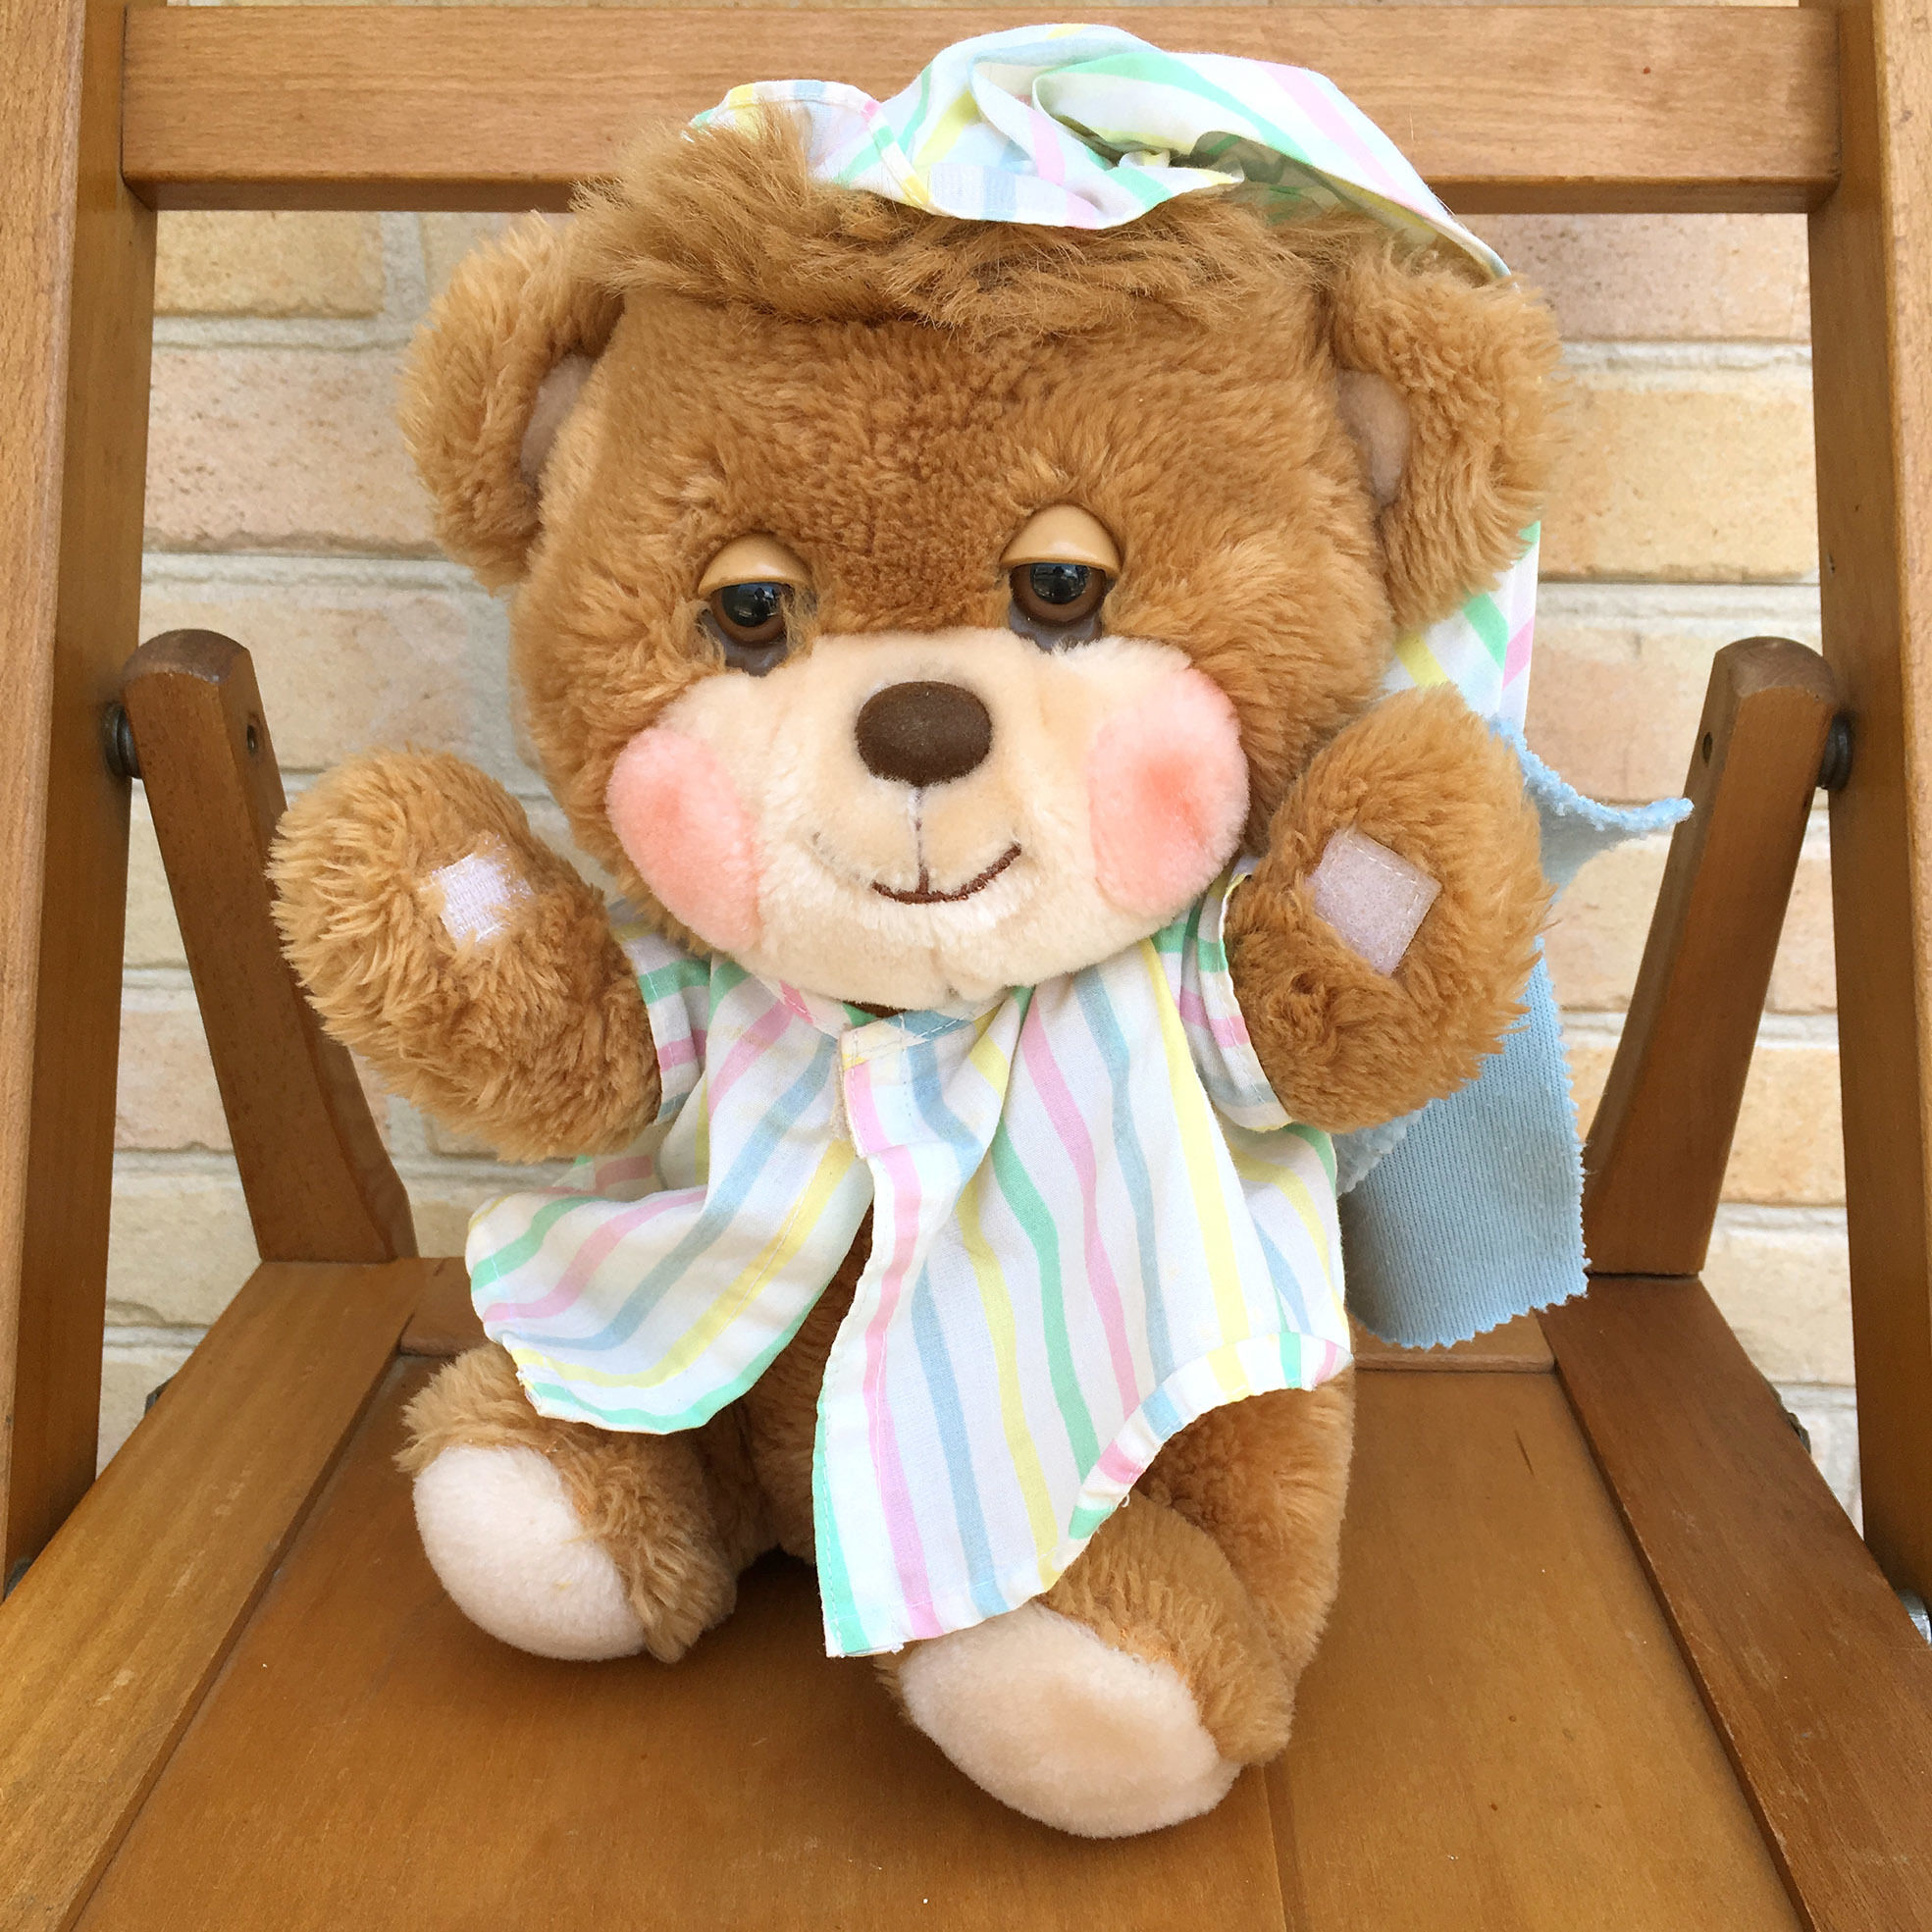 TEDDY BEDDY BEAR Teddy Beddy Bear Plush Doll/テディベッディベア ぬいぐるみ/170715-1